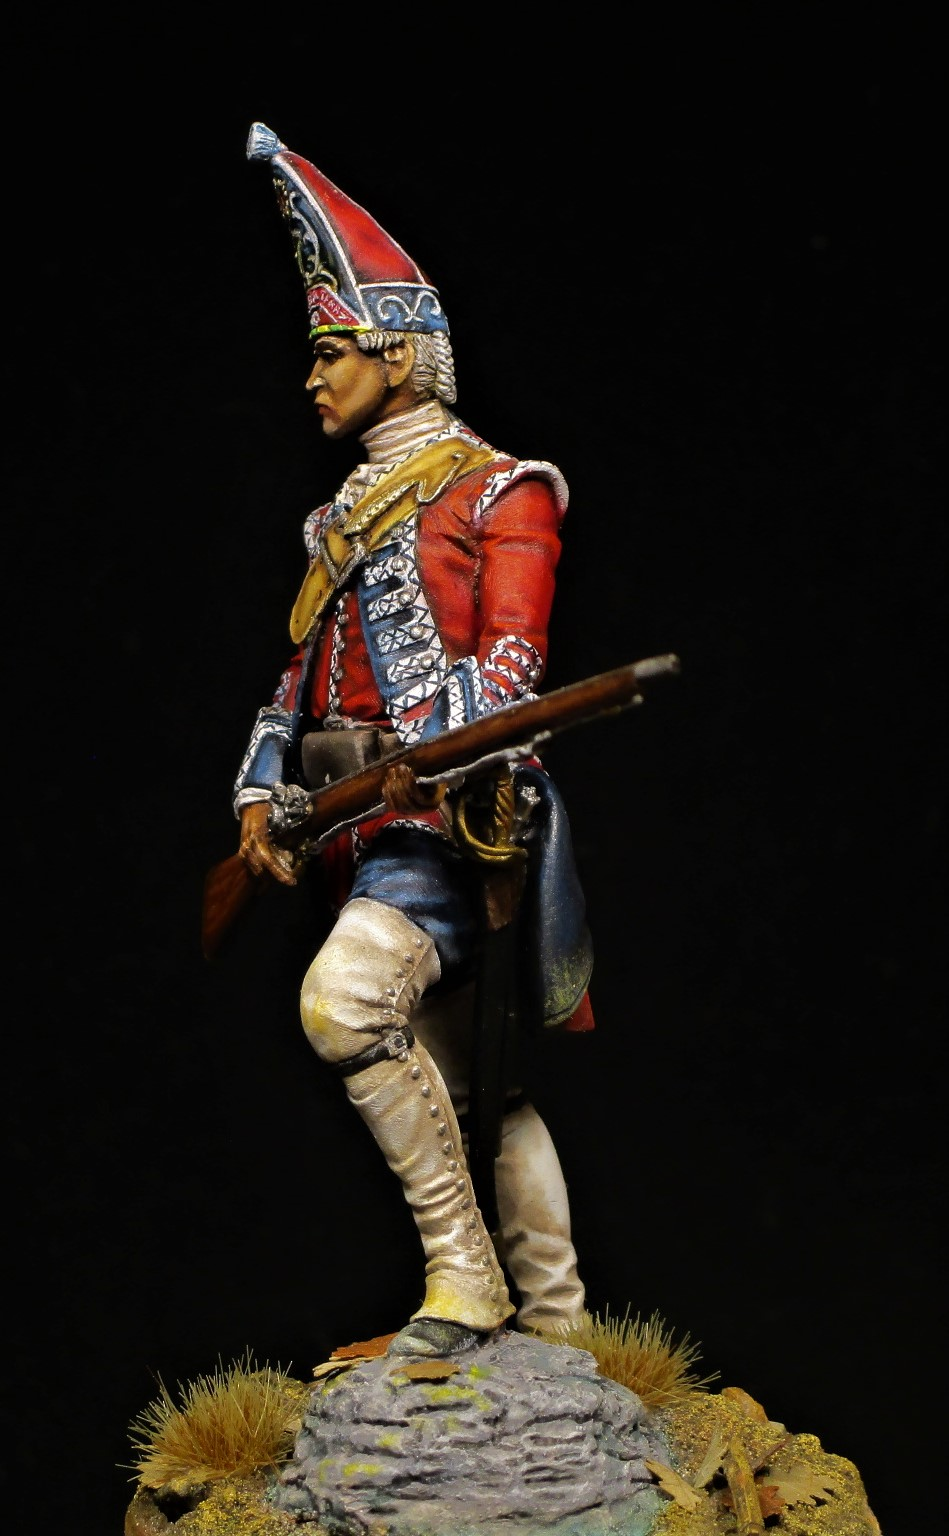 grenadier anglais du 18th Foot en 1751 - Page 2 Img_1223